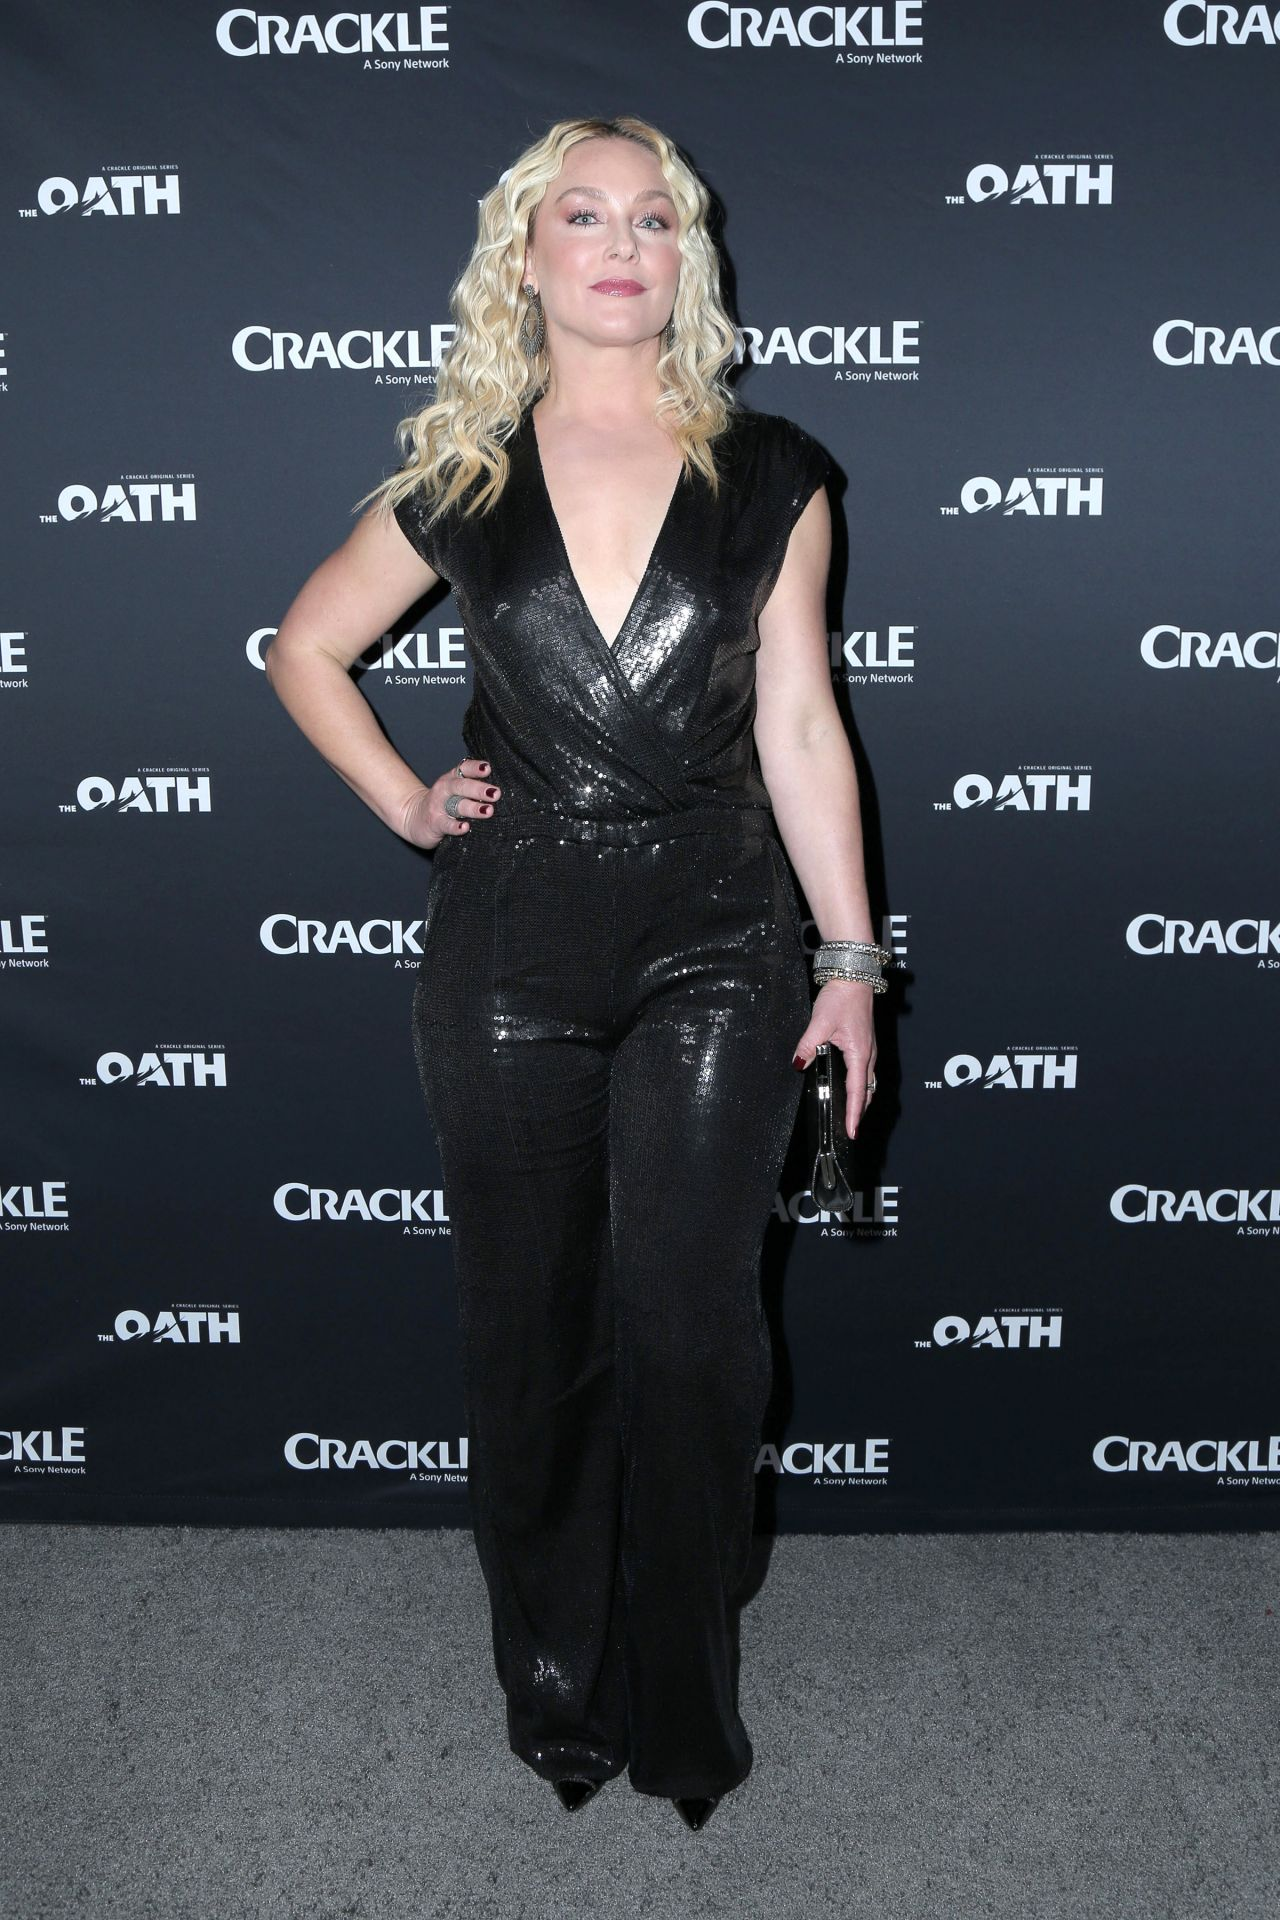 http://celebmafia.com/wp-content/uploads/2018/03/elisabeth-rohm-the-oath-tv-series-premiere-in-la-7.jpg